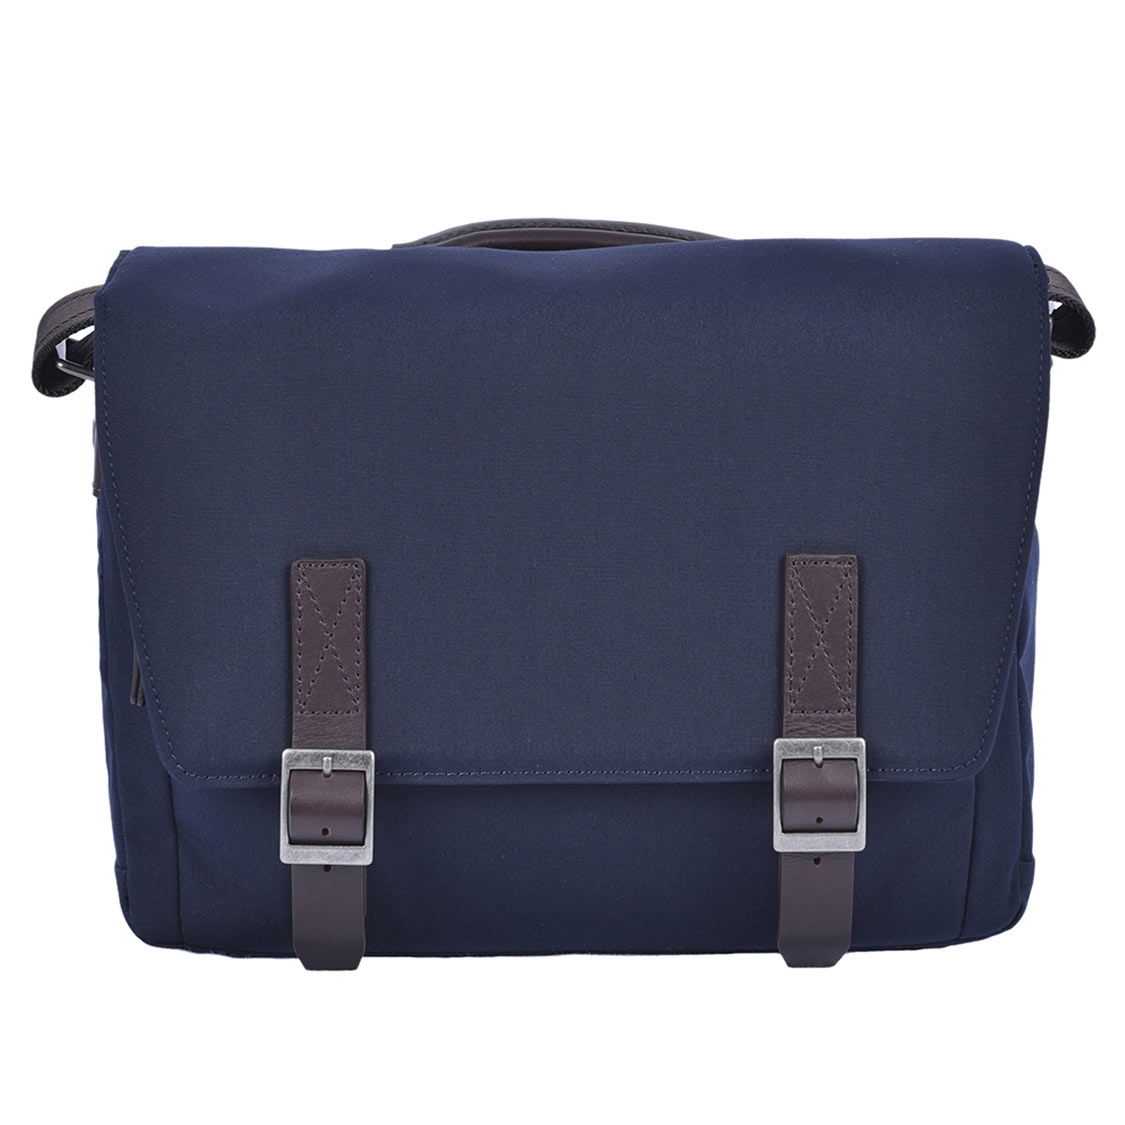 SIRUI MyStory 11-inch Photo Bag (indigo)